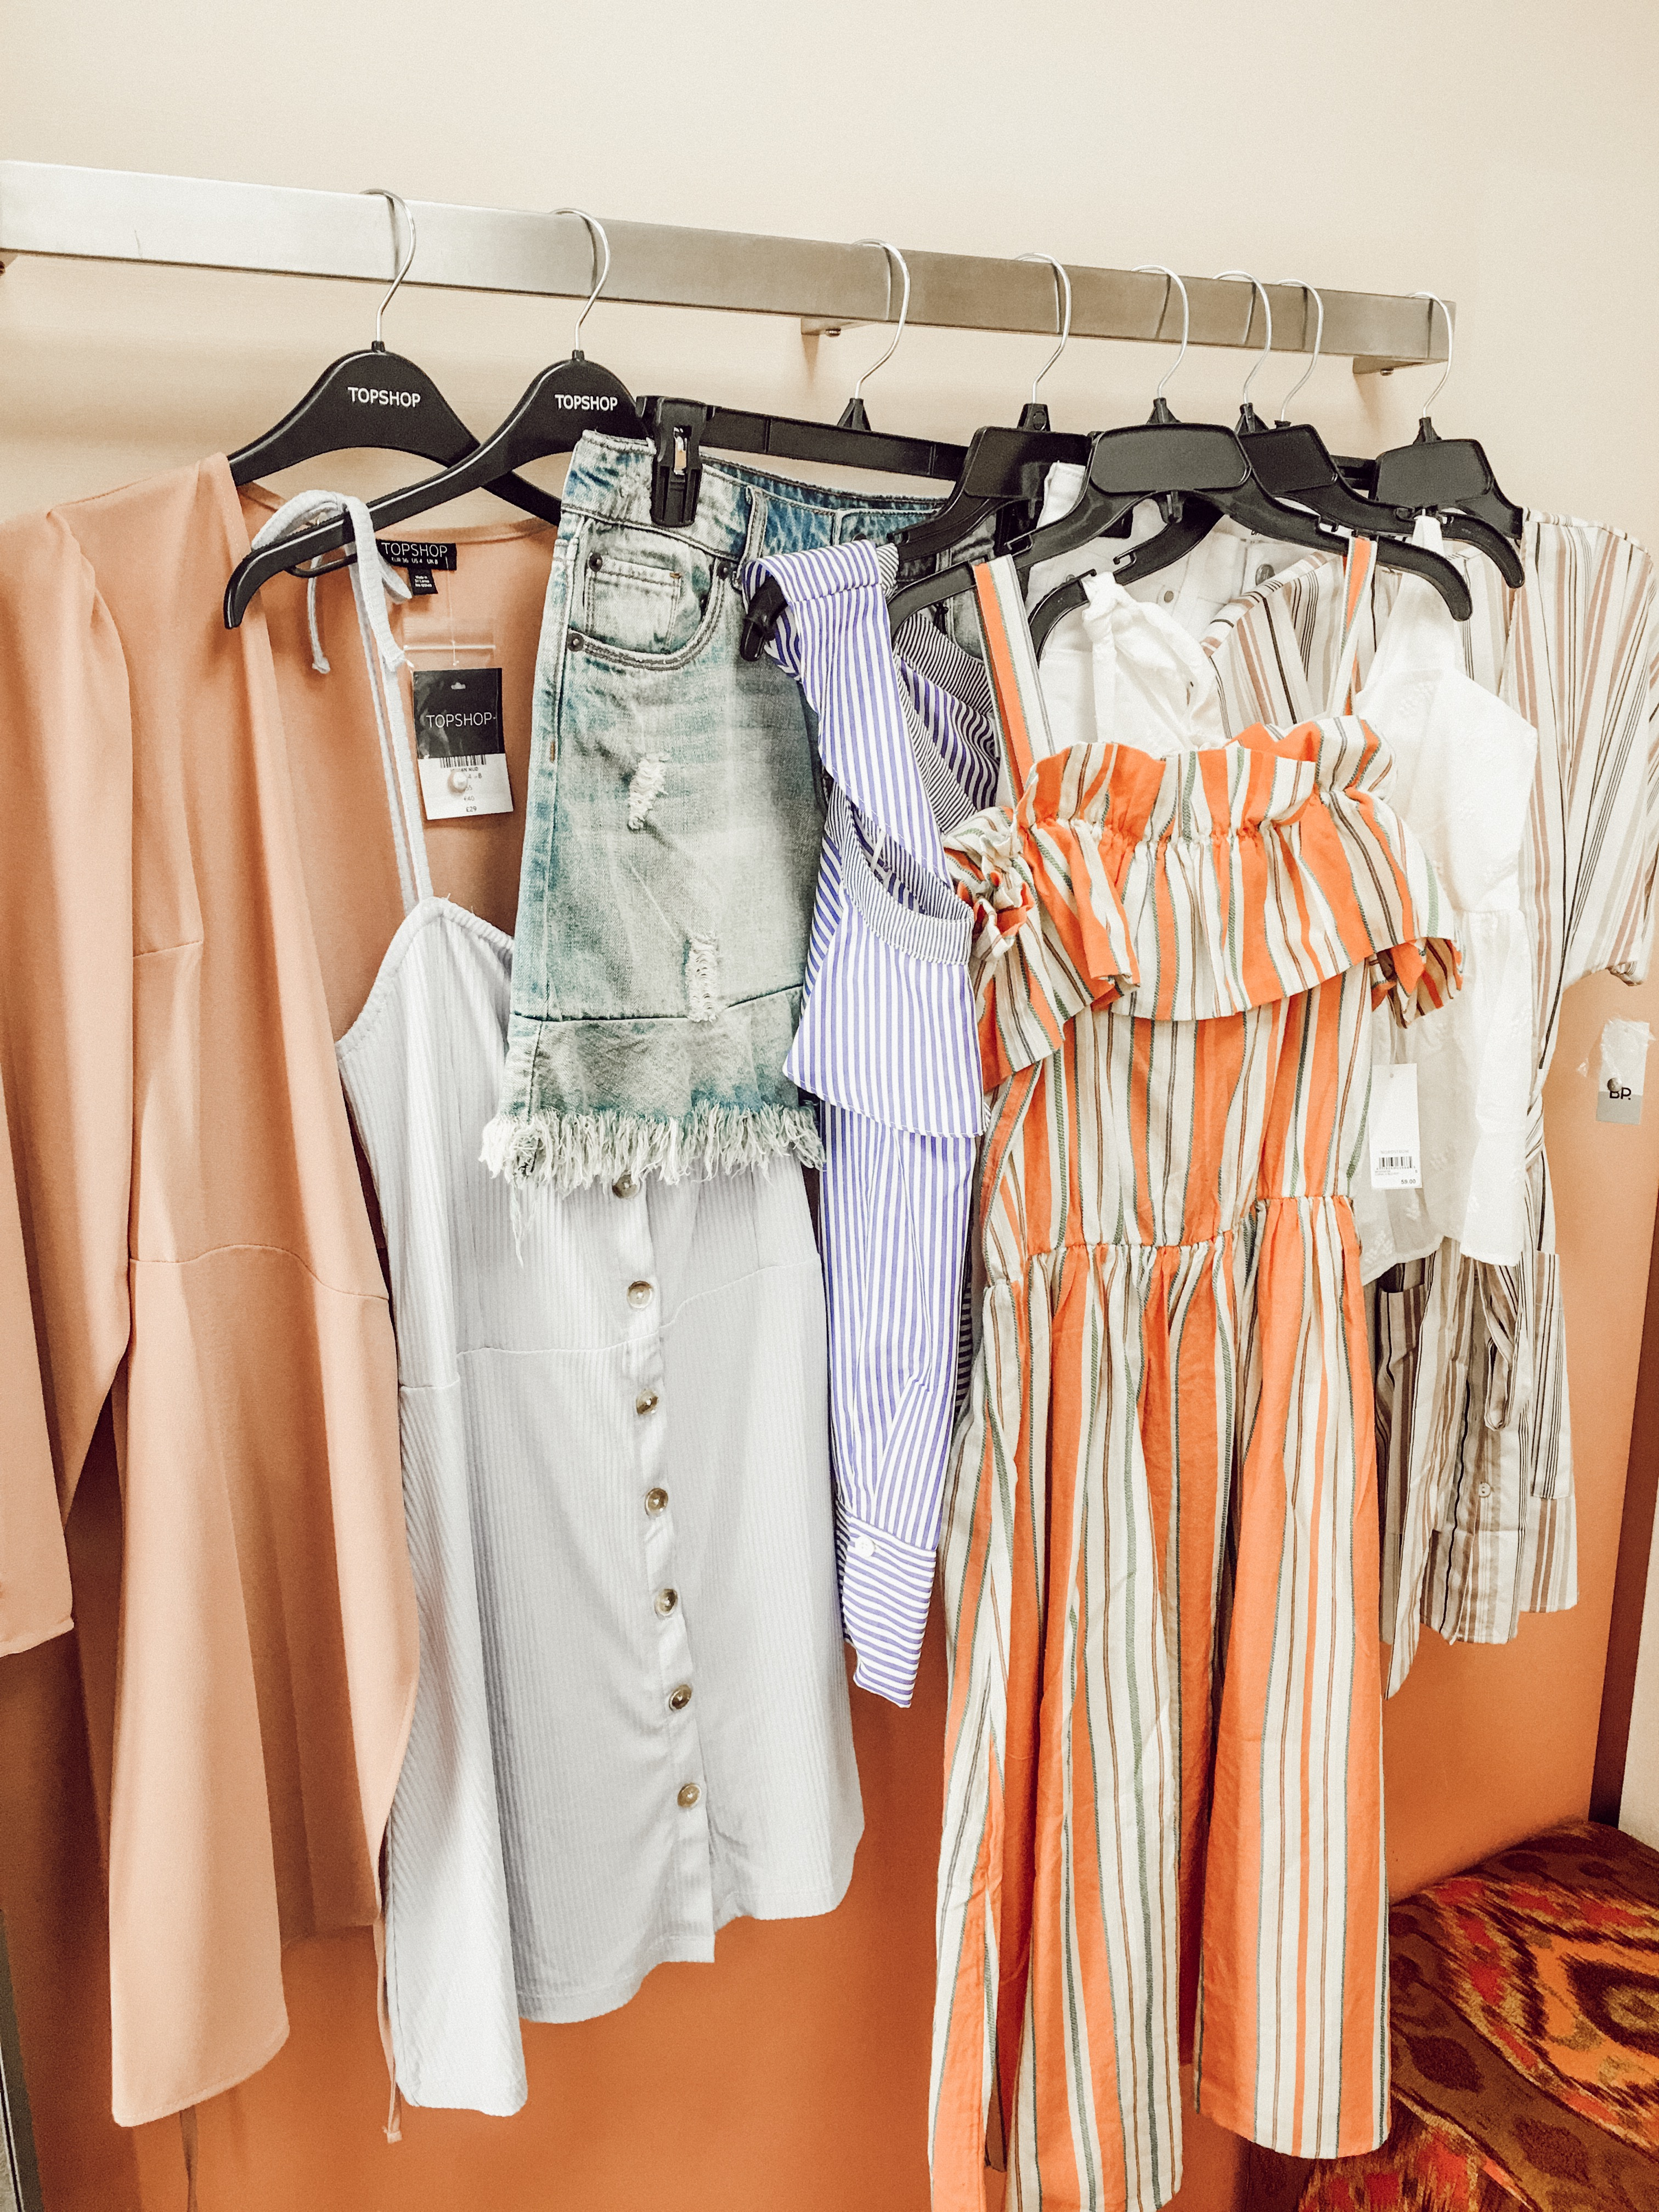 Pretty Spring Outfit Ideas   Easter   Try-on   Audrey Madison Stowe a fashion and lifestyle blogger - Cute Easter Outfit Ideas by popular Texas fashion blogger Audrey Madison Stowe